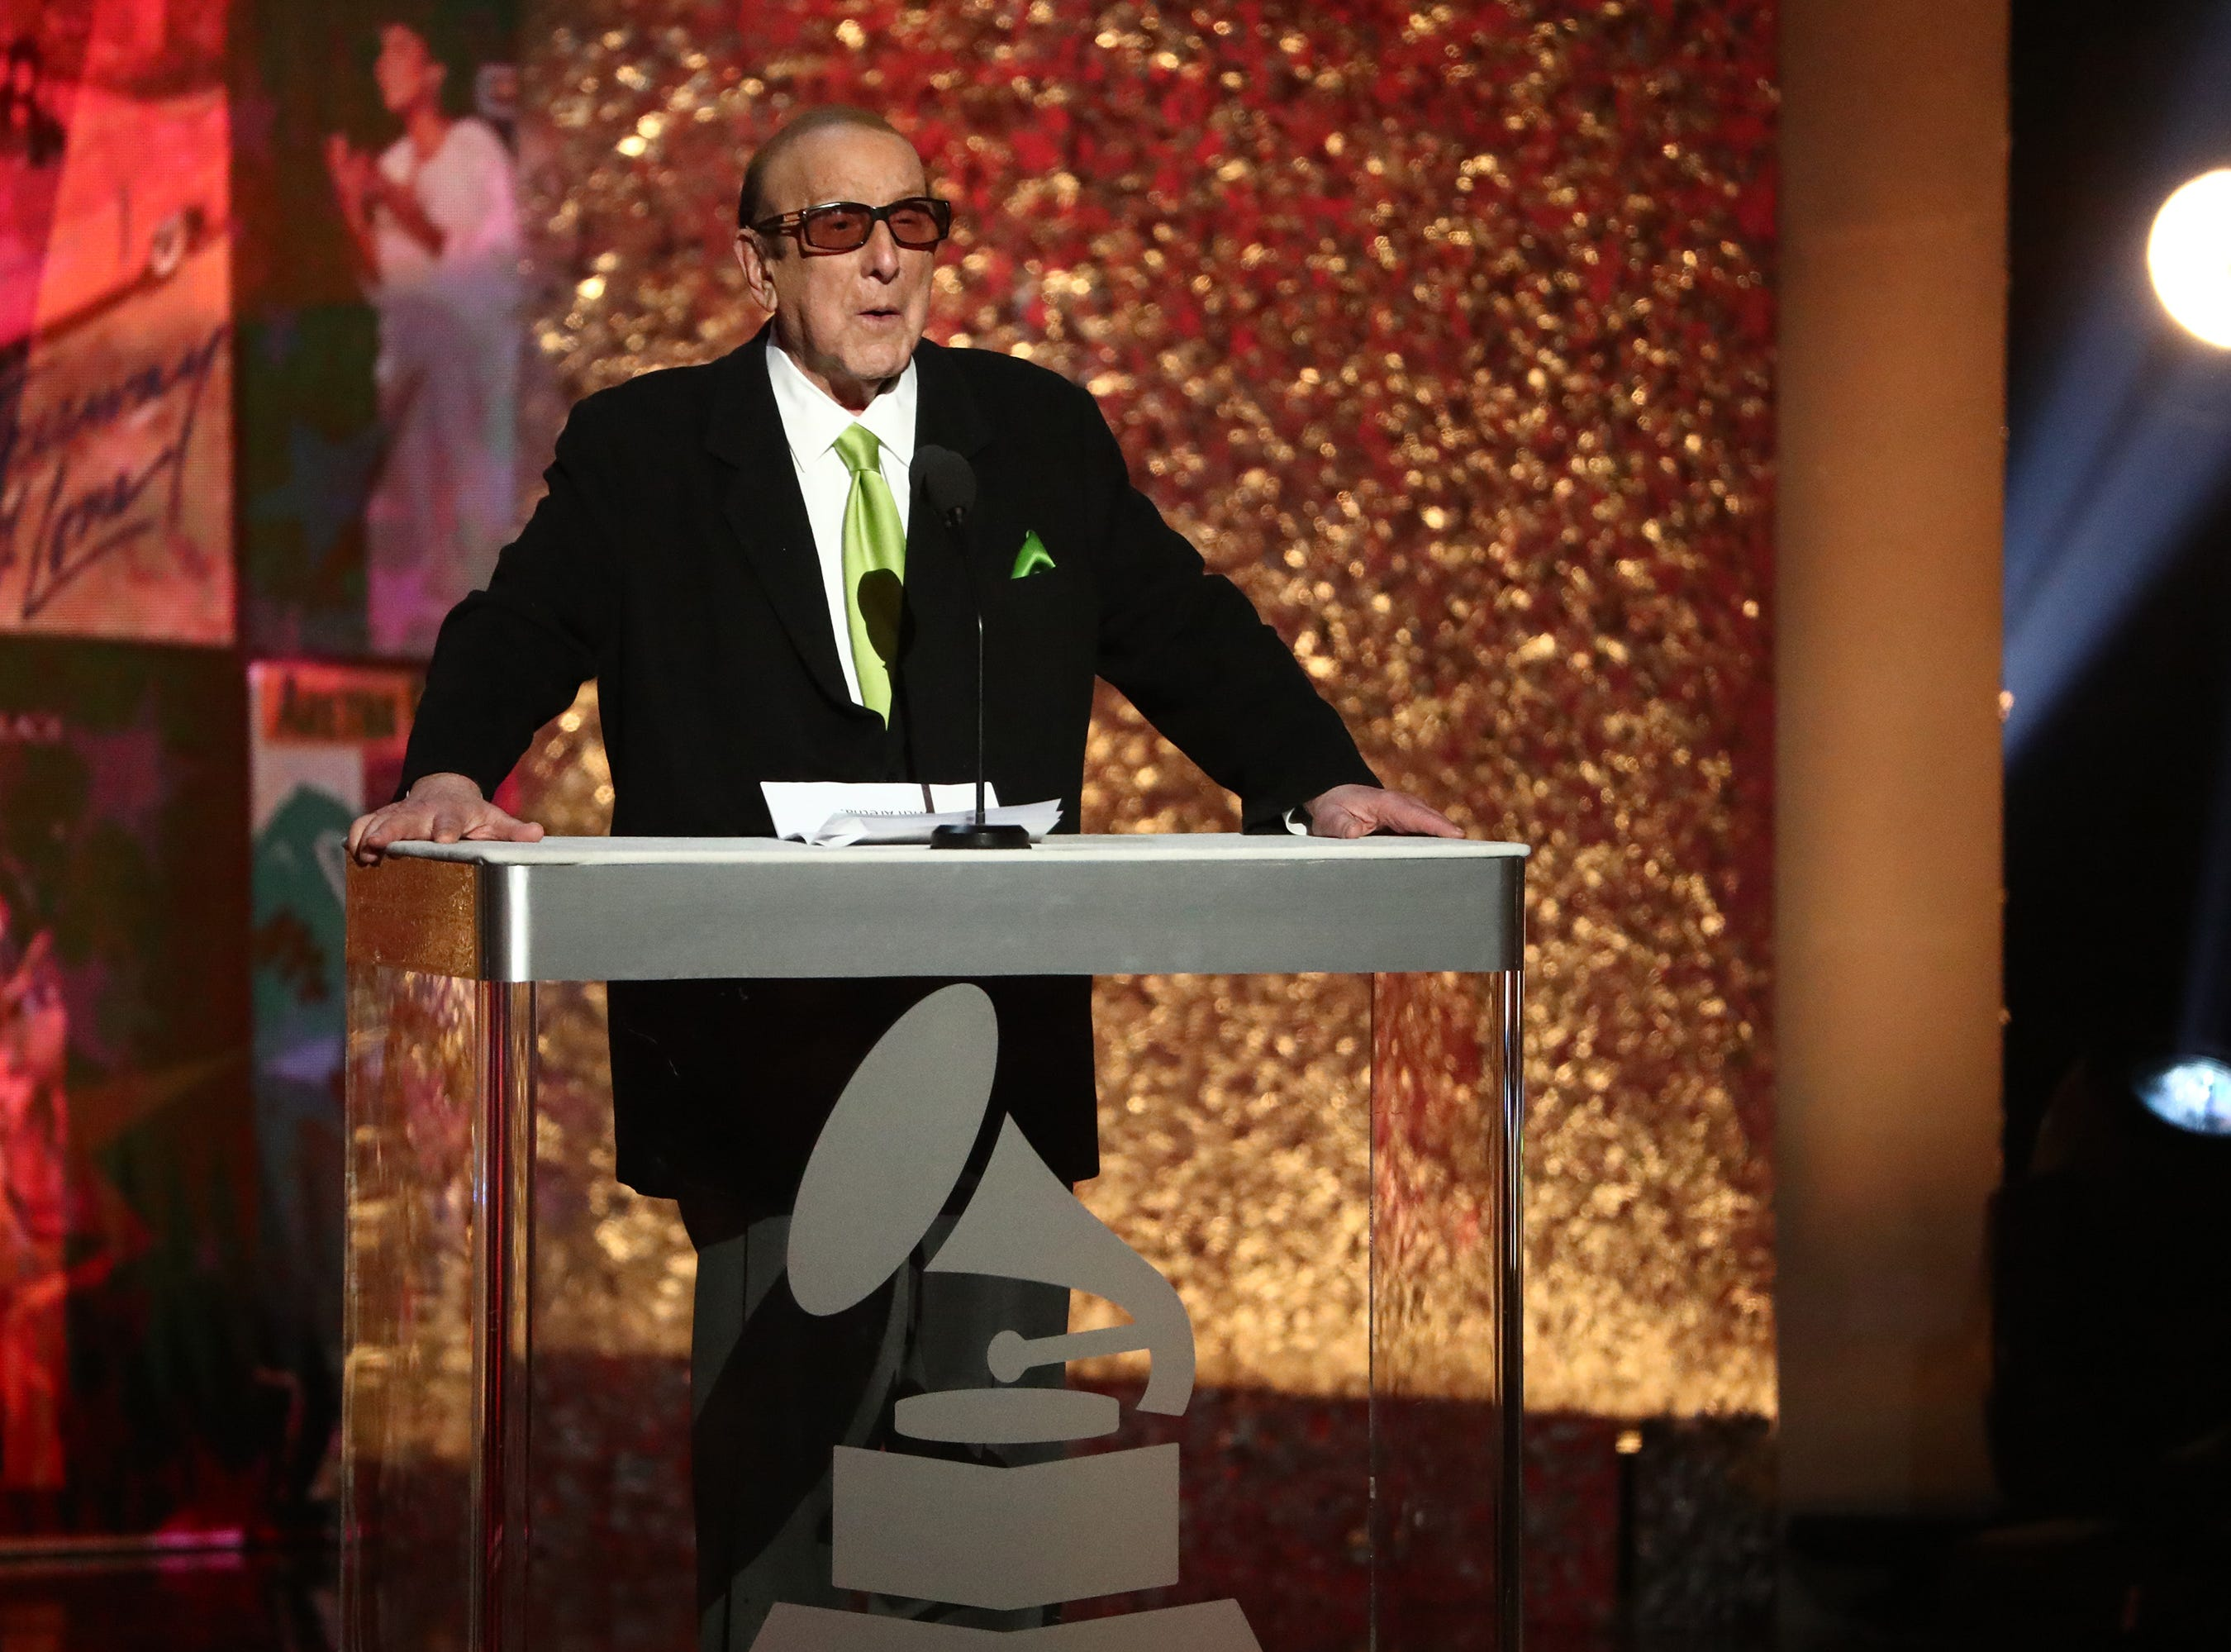 """LOS ANGELES, CA - JANUARY 13:  Clive Davis speaks at """"Aretha! A Grammy Celebration For the Queen Of Soul"""" at the Shrine Auditorium on Jan. 13, 2019, in Los Angeles, Calif."""